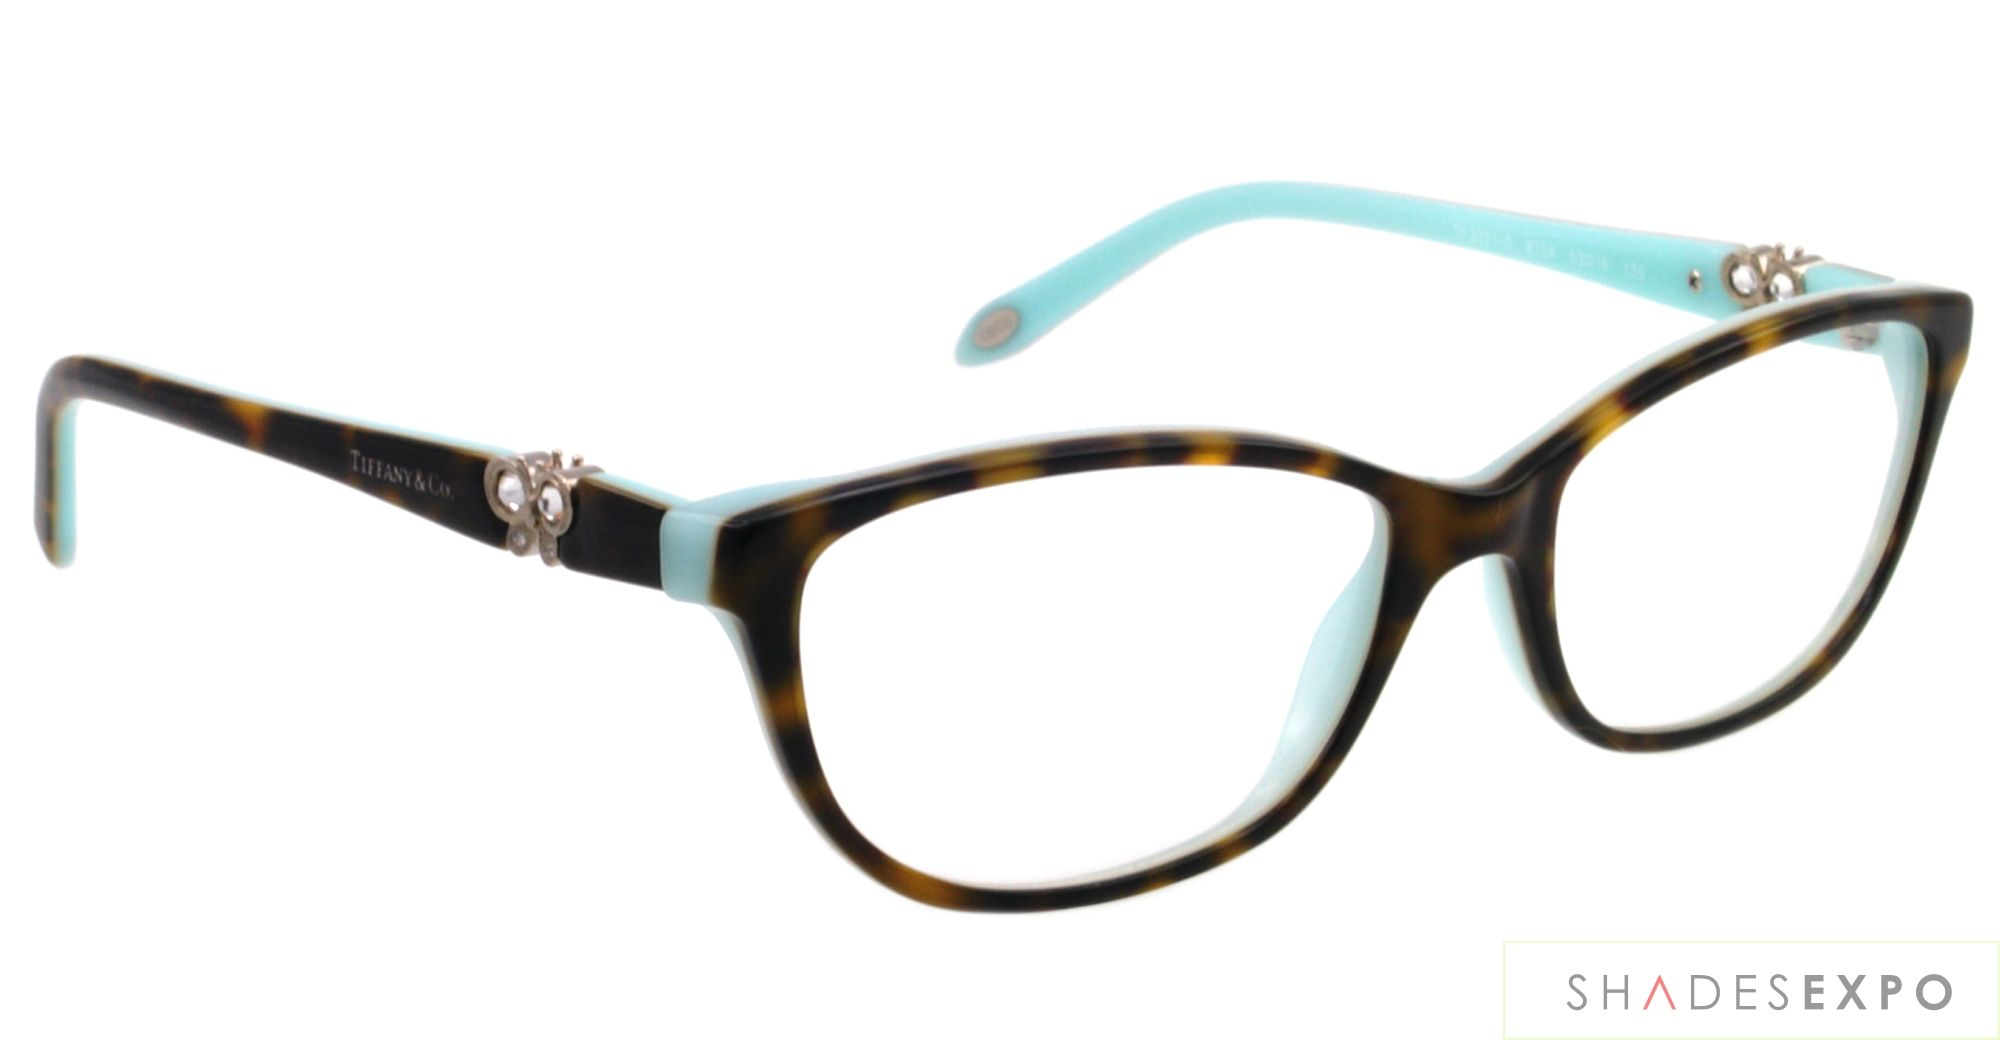 7482a1a8dcf NEW Tiffany Eyeglasses TIF 2051B HAVANA 8134 TIF2051 53MM AUTHENTIC ...